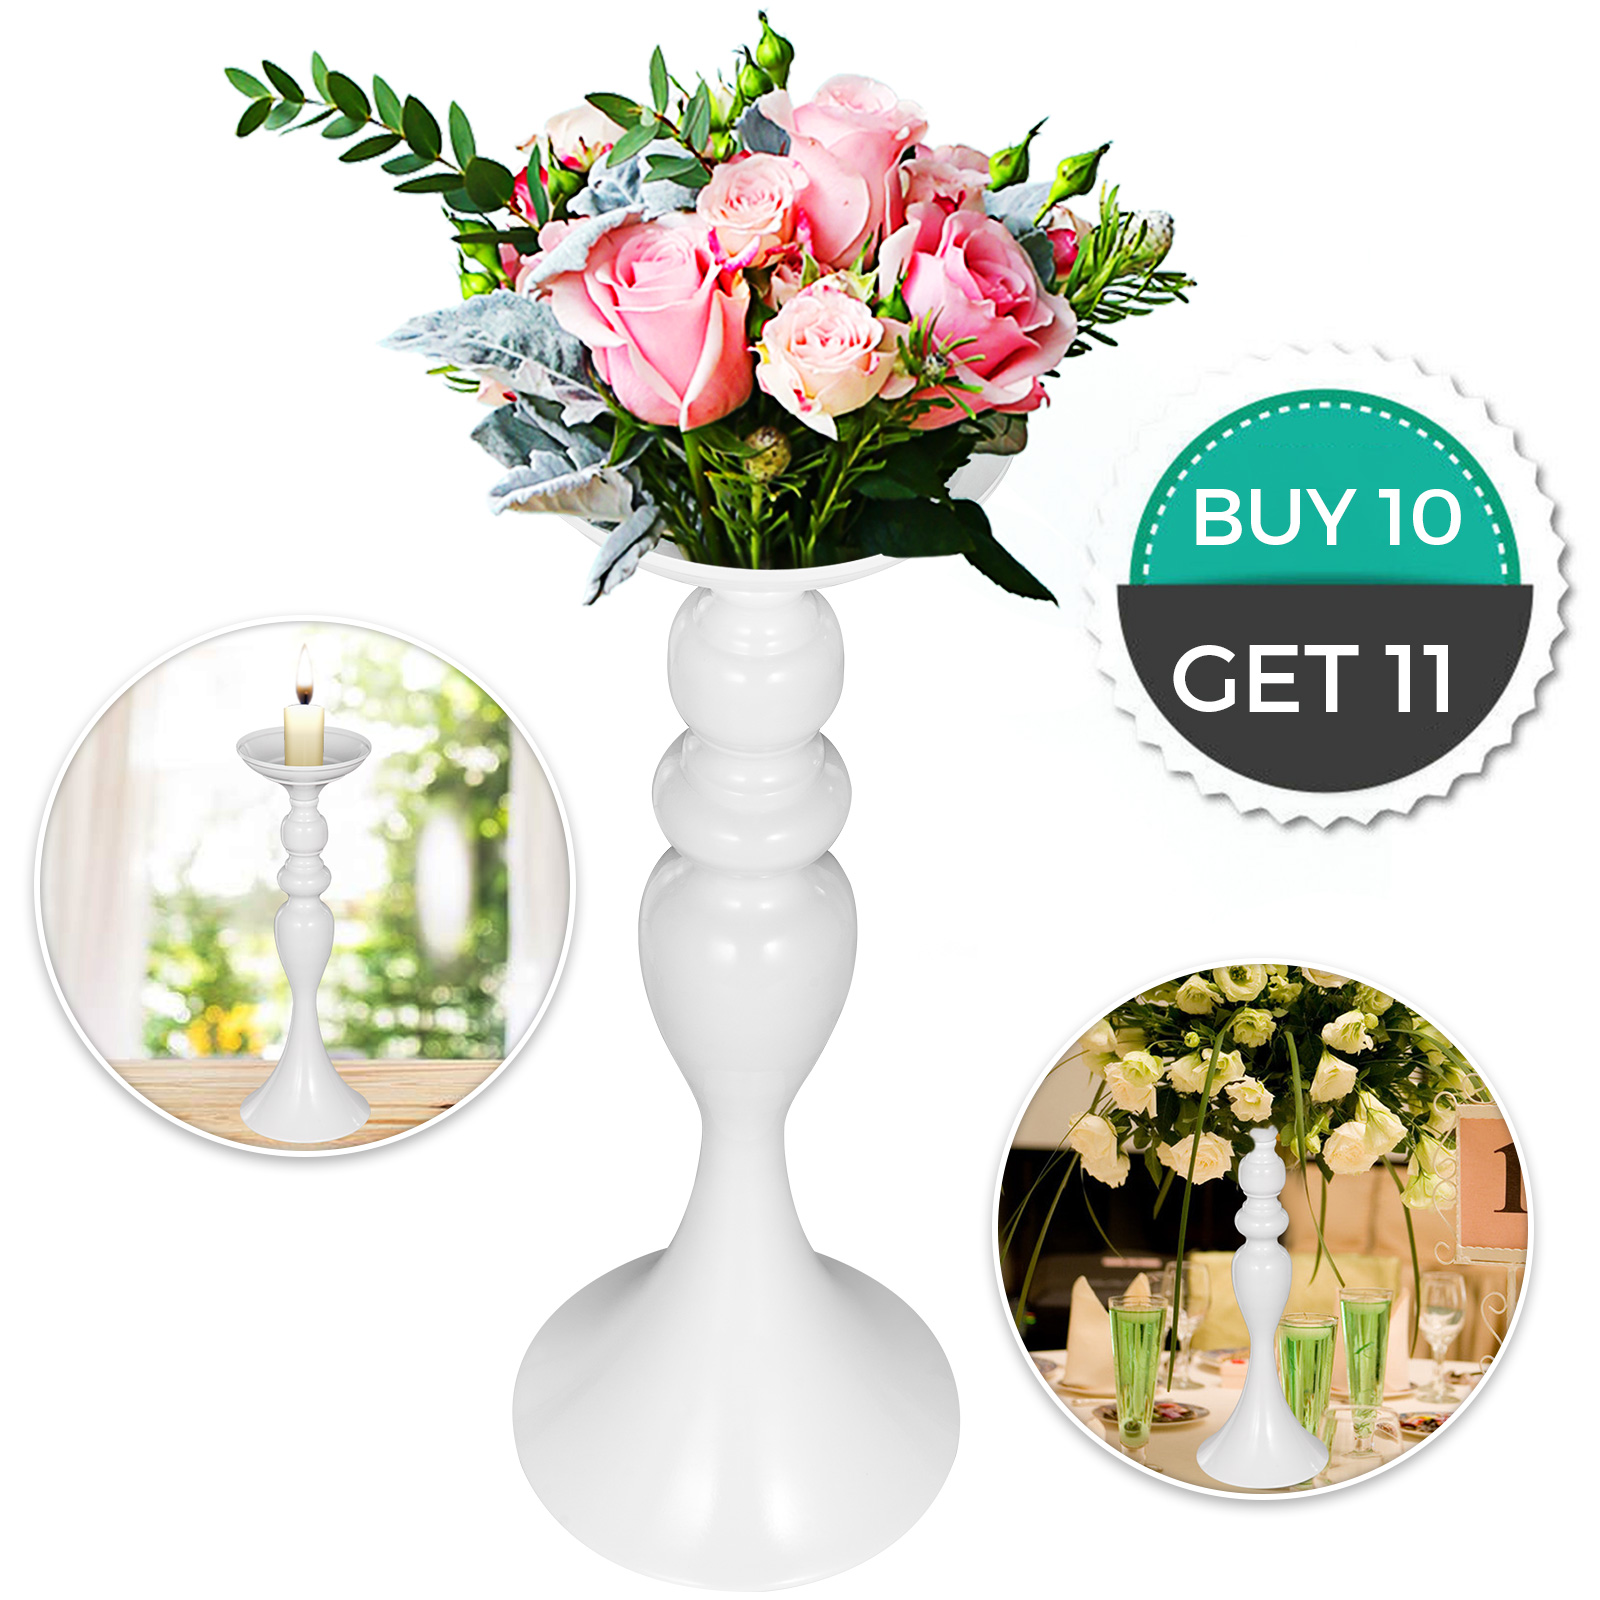 Flower-Rack-for-Wedding-Metal-Candle-Stand-4-11pcs-Centerpiece-Flower-Vase thumbnail 169